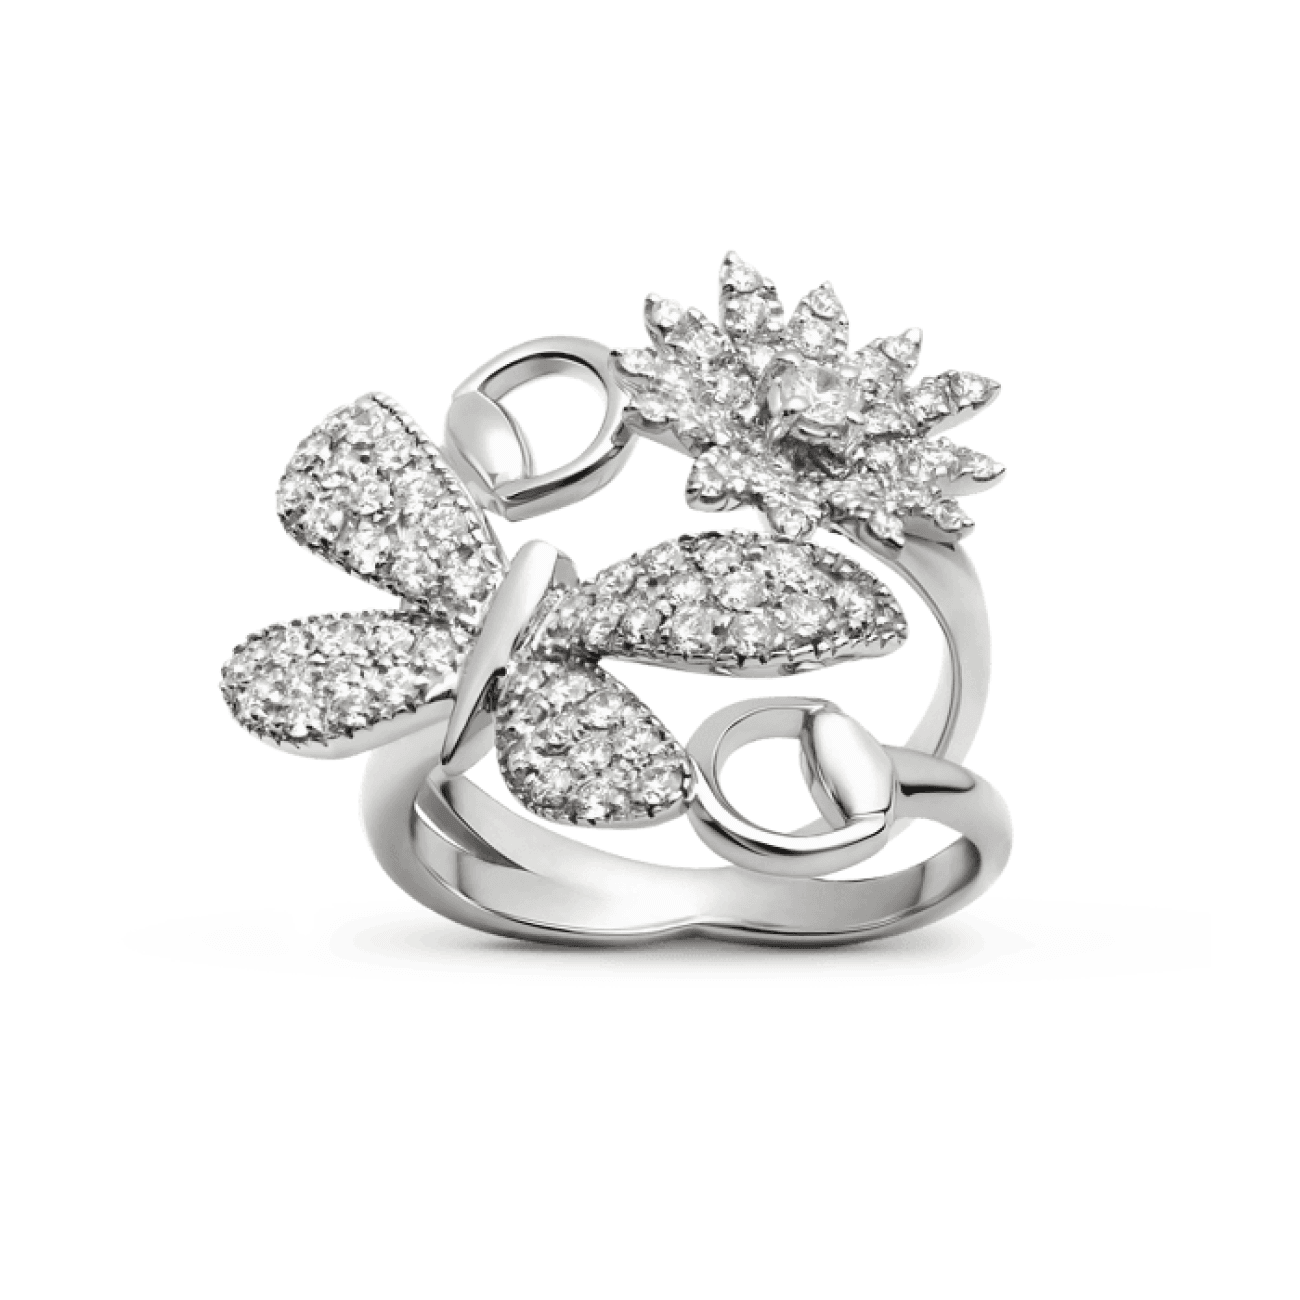 Gucci Jewelry - Flora diamond butterfly and daisy ring | Manfredi Jewels